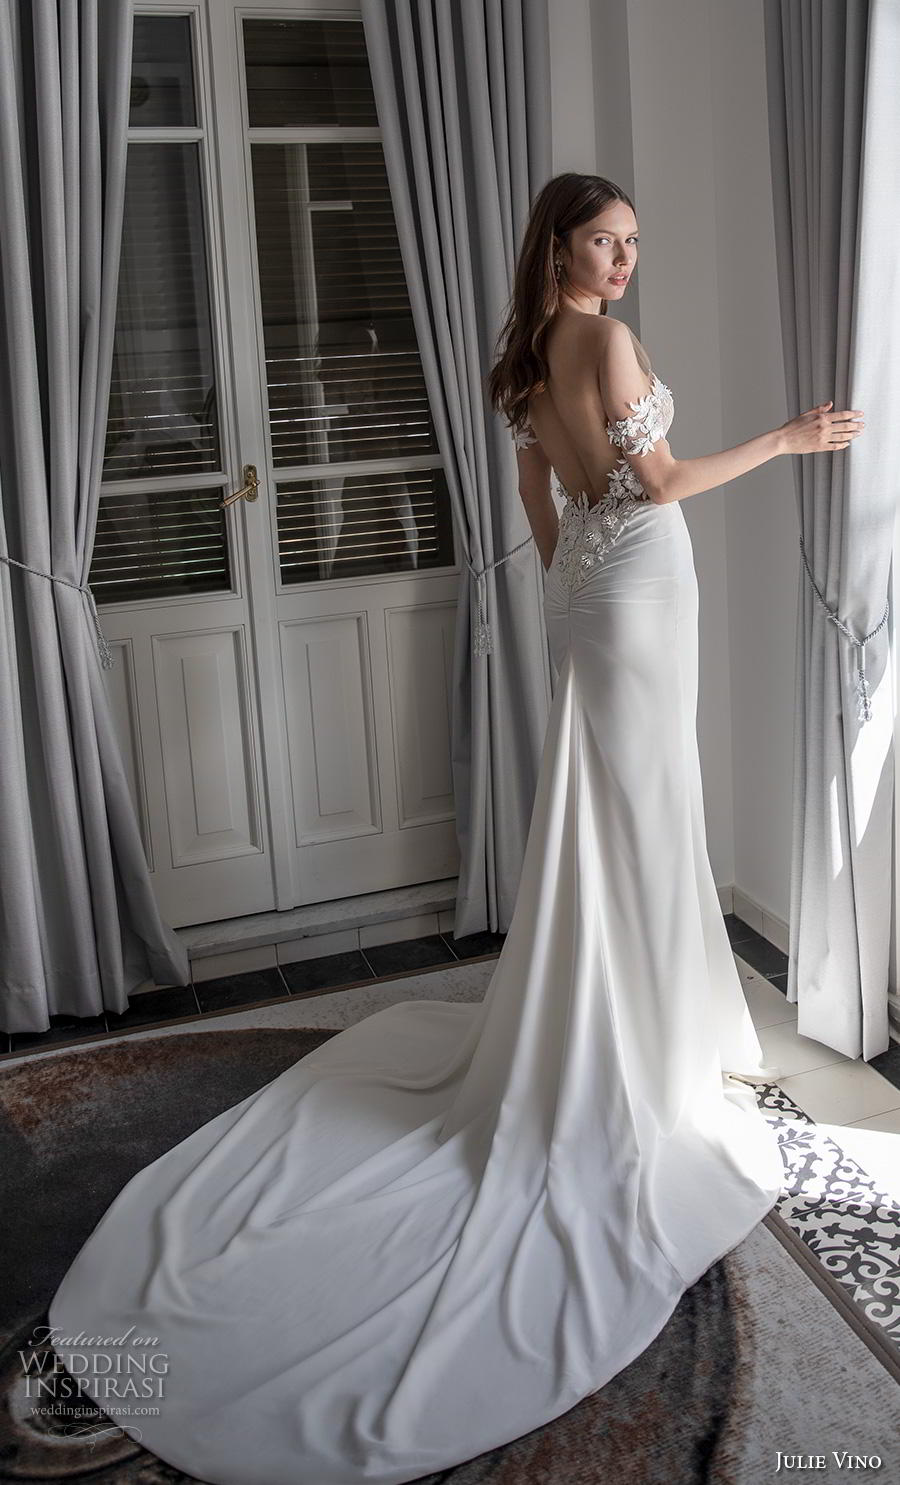 julie vino 2020 romanzo bridal off the shoulder deep plunging sweetheart neckline heavily embellished bodice romantic fit and flare wedding dress backless low back chapel train (5) bv